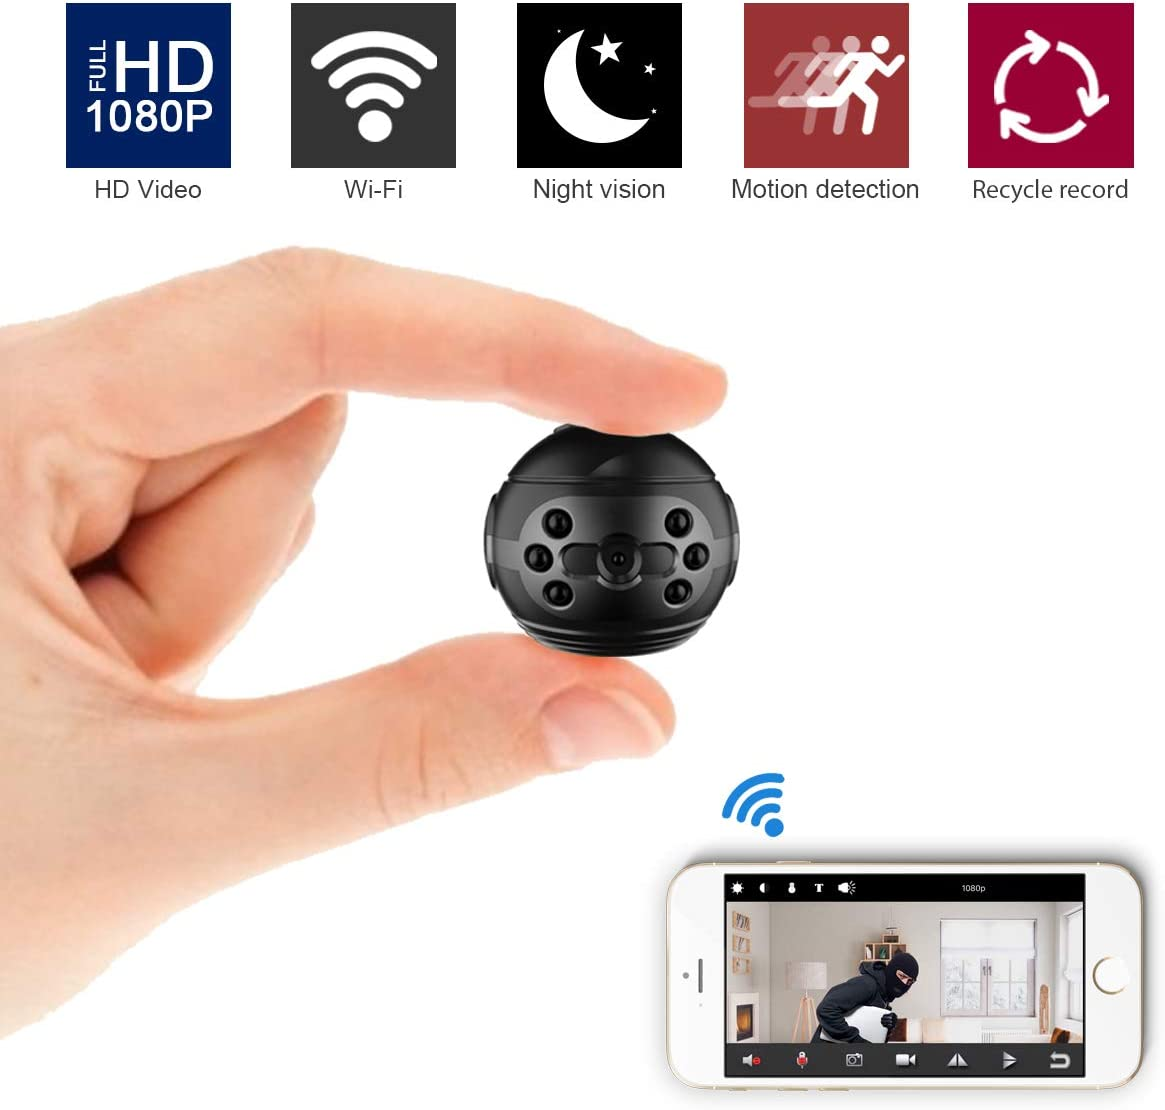 ZXWDDP Mini Spy Camera Wireless Hidden 1080P Portable Security Mini WiFi Camera with Infrared Night Vision Motion Detection Function is Suitable for Home Office Store Car Security Monitoring